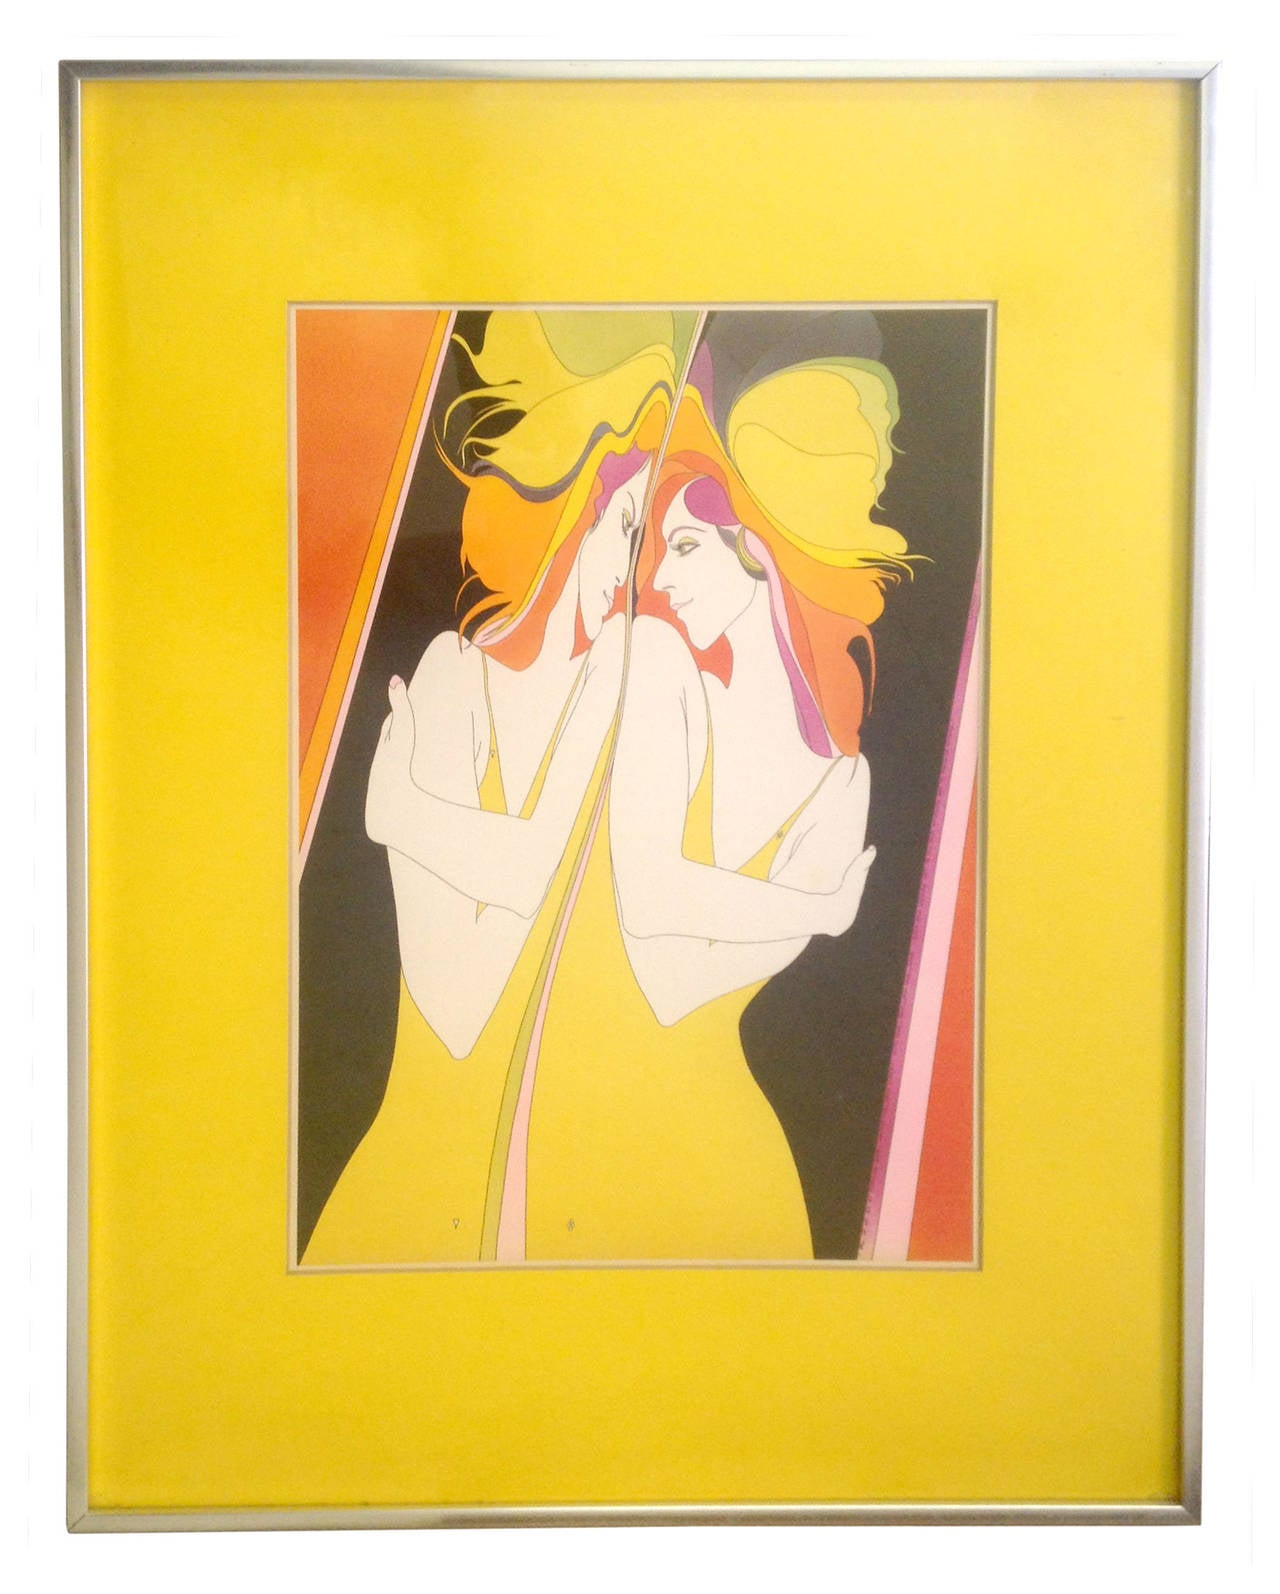 A lithograph by 1970s psychedelic master John Luke Eastman, who worked out of Southern California during the 1960s-1980s. A young woman gazes at herself in the mirror, with a subtle inscription up the side reading